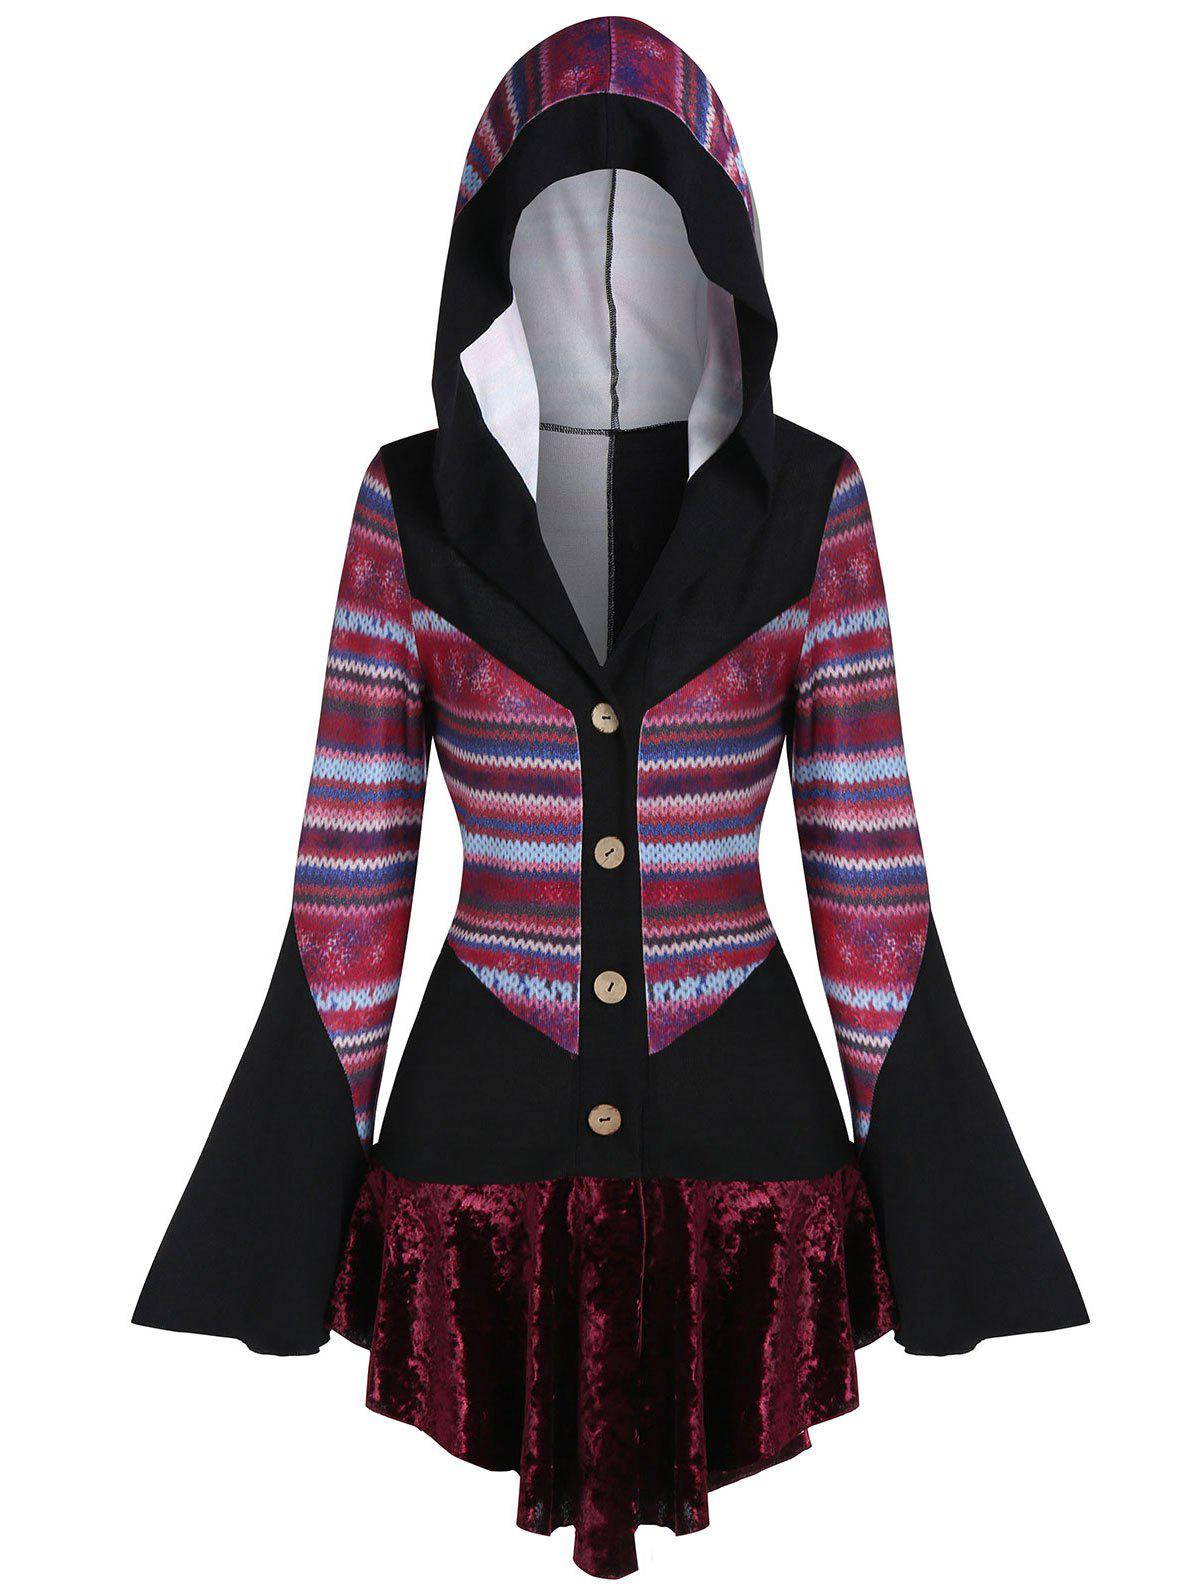 Zigzag Print Flare Sleeve Hooded Sweater - multicolor A 3XL